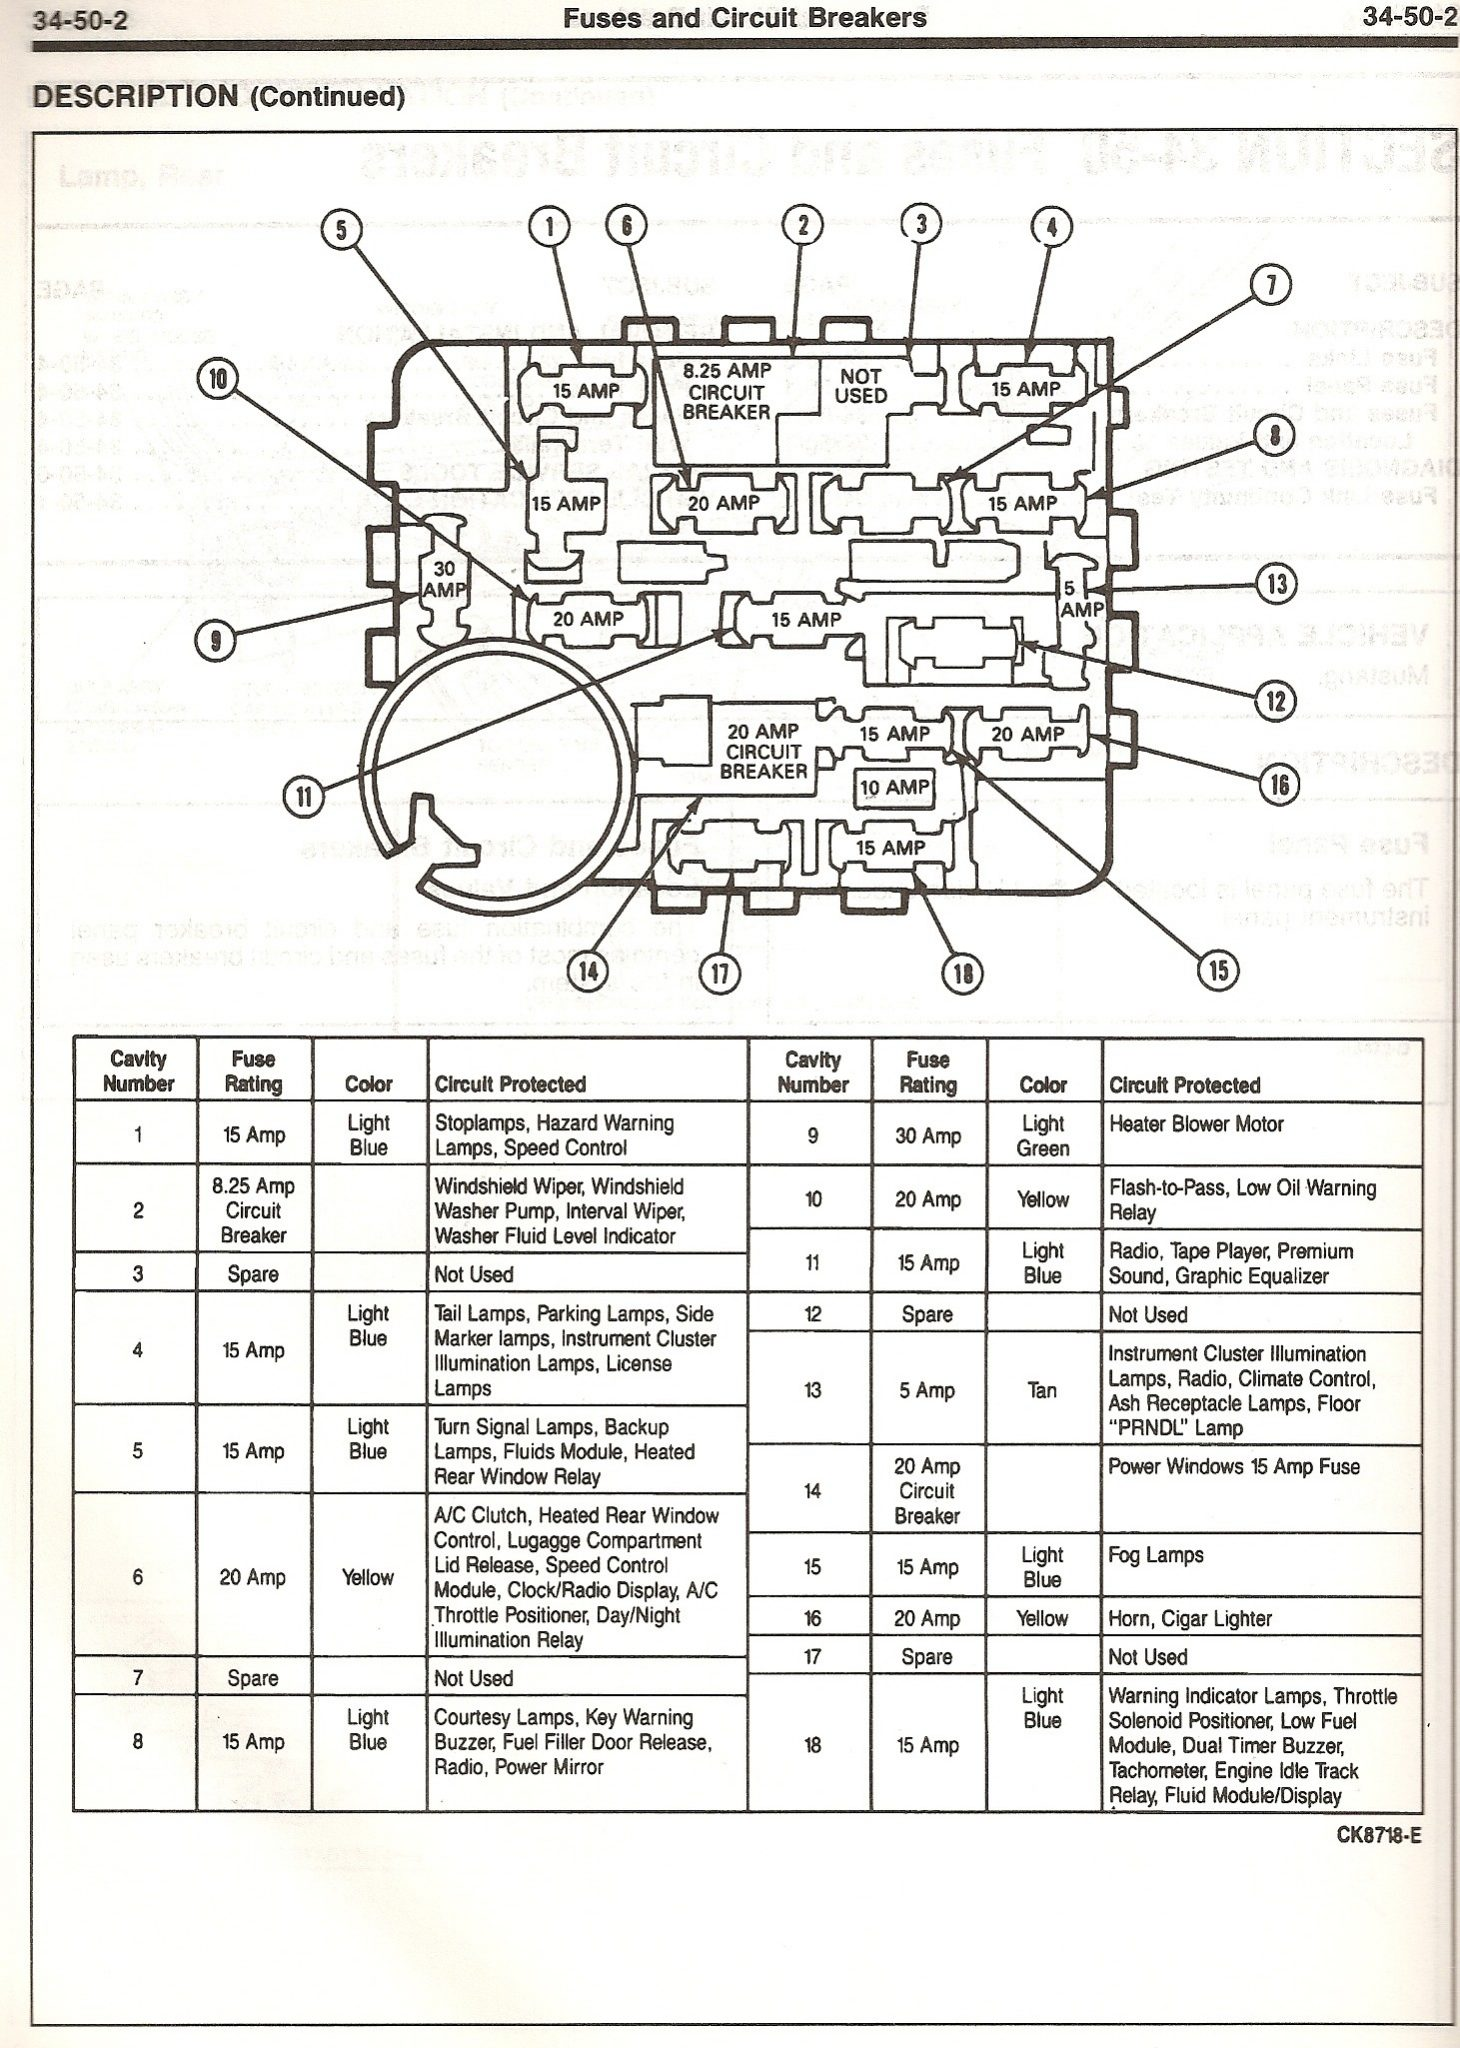 honda accord fuel pump wiring diagram images stereo wiring 4x4 vacuum diagram on 93 mustang ecm wiring get image